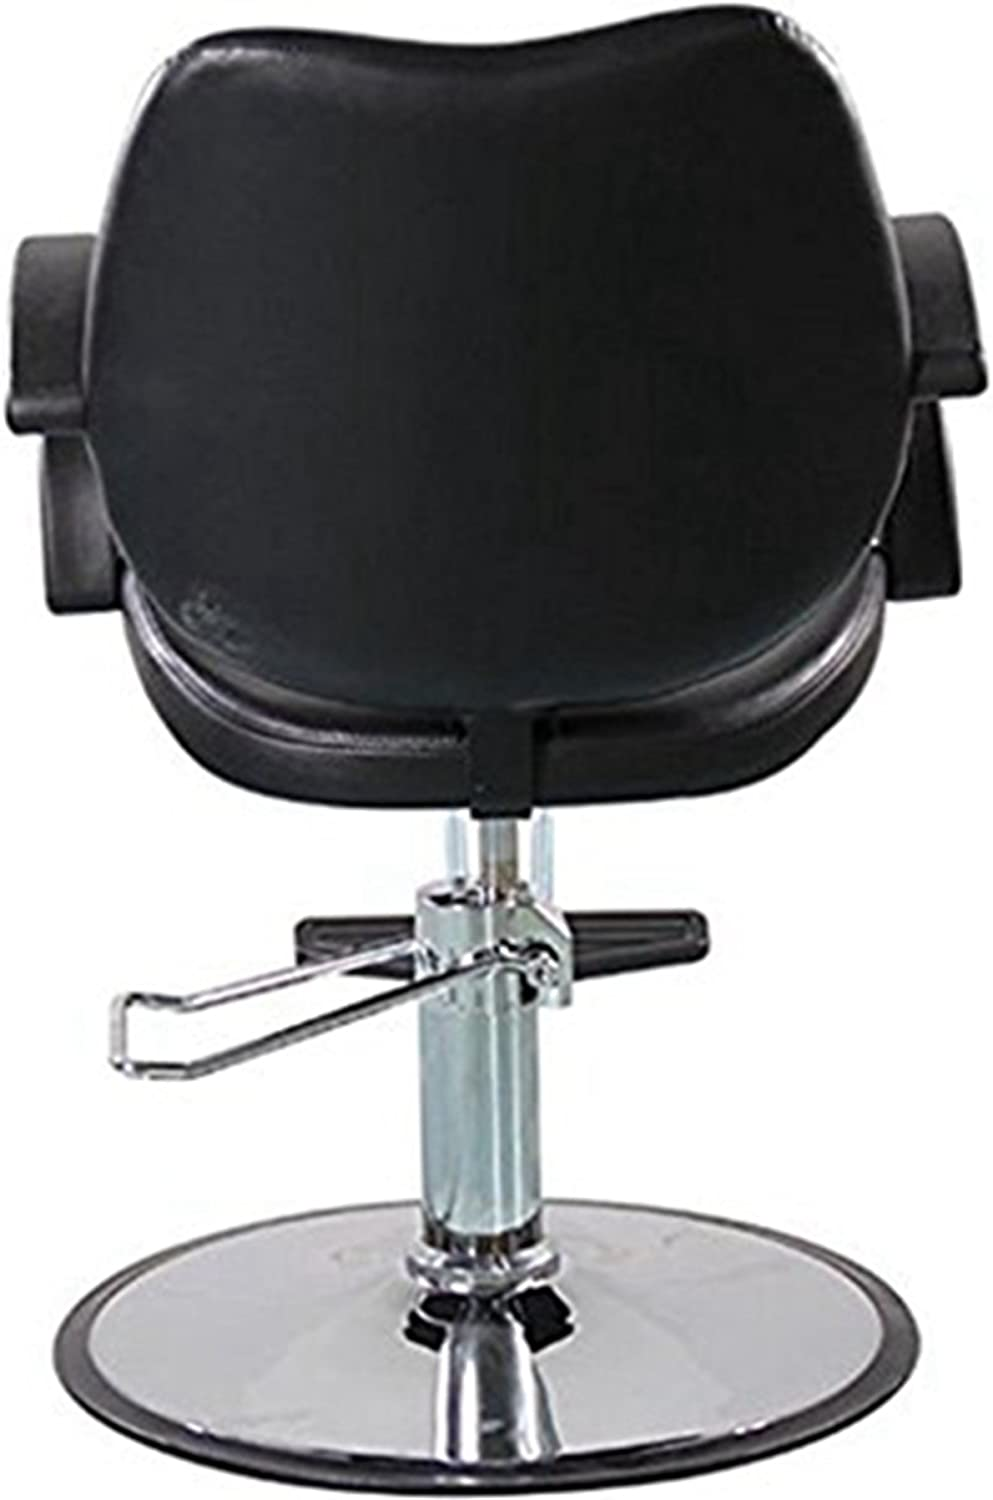 FlagBeauty Black Hydraulic Barber Styling Chair Hair Beauty Salon Equipment: Health & Personal Care